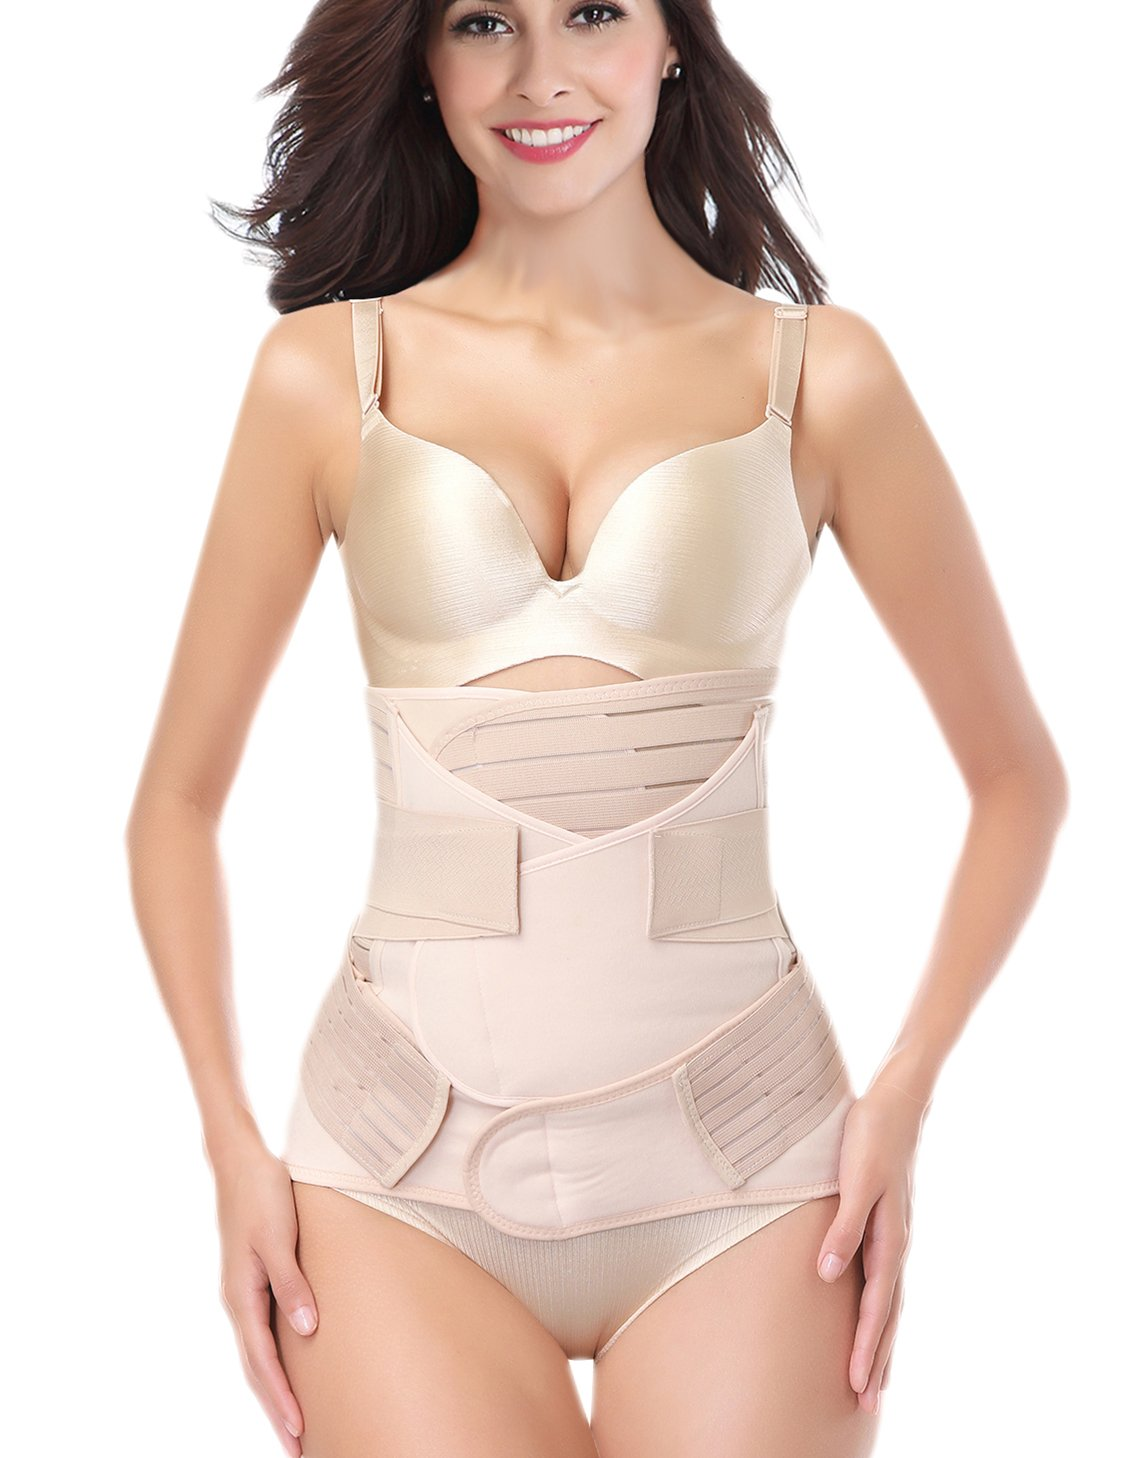 DICOOL 3 in 1 Postpartum Belly Wrap Support Recovery Band Waist Belts Shapewear Girdles Nude by DICOOL